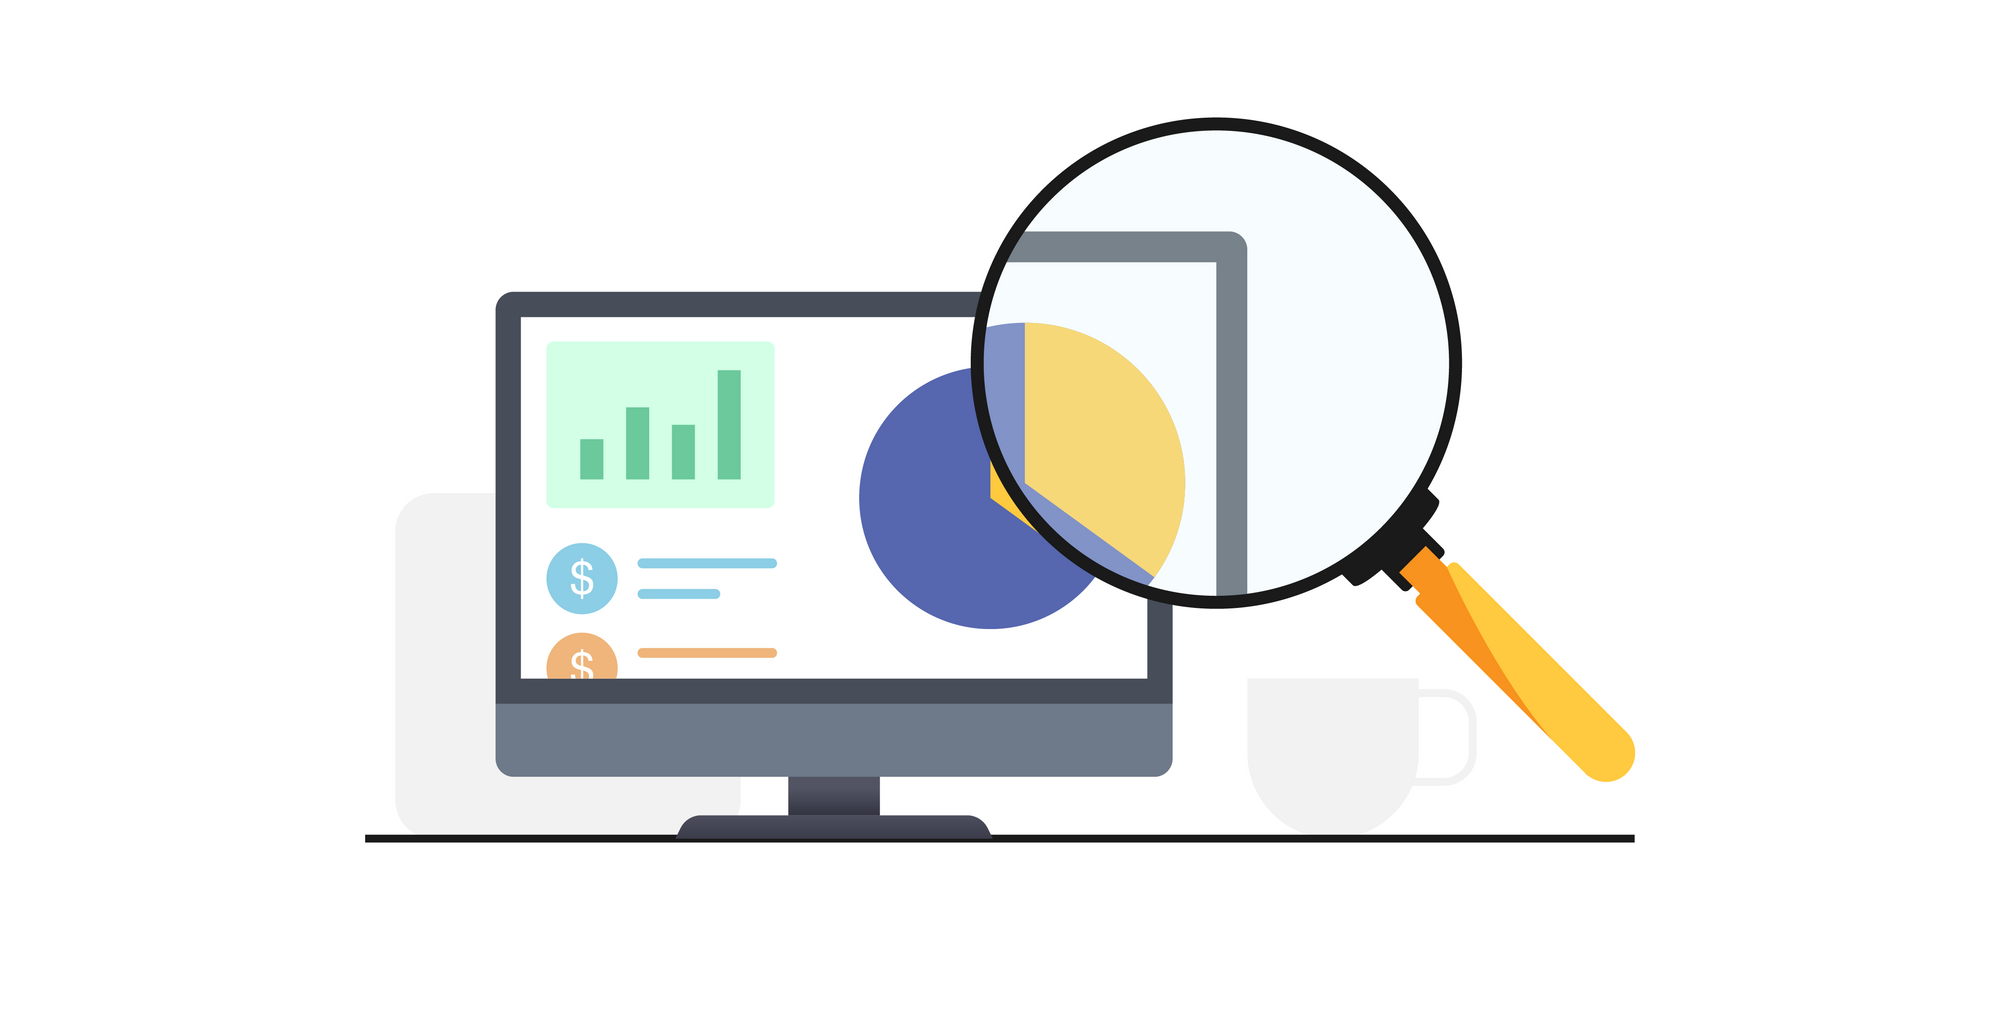 3 Steps to Monitor Your Competitor's Marketing Campaign